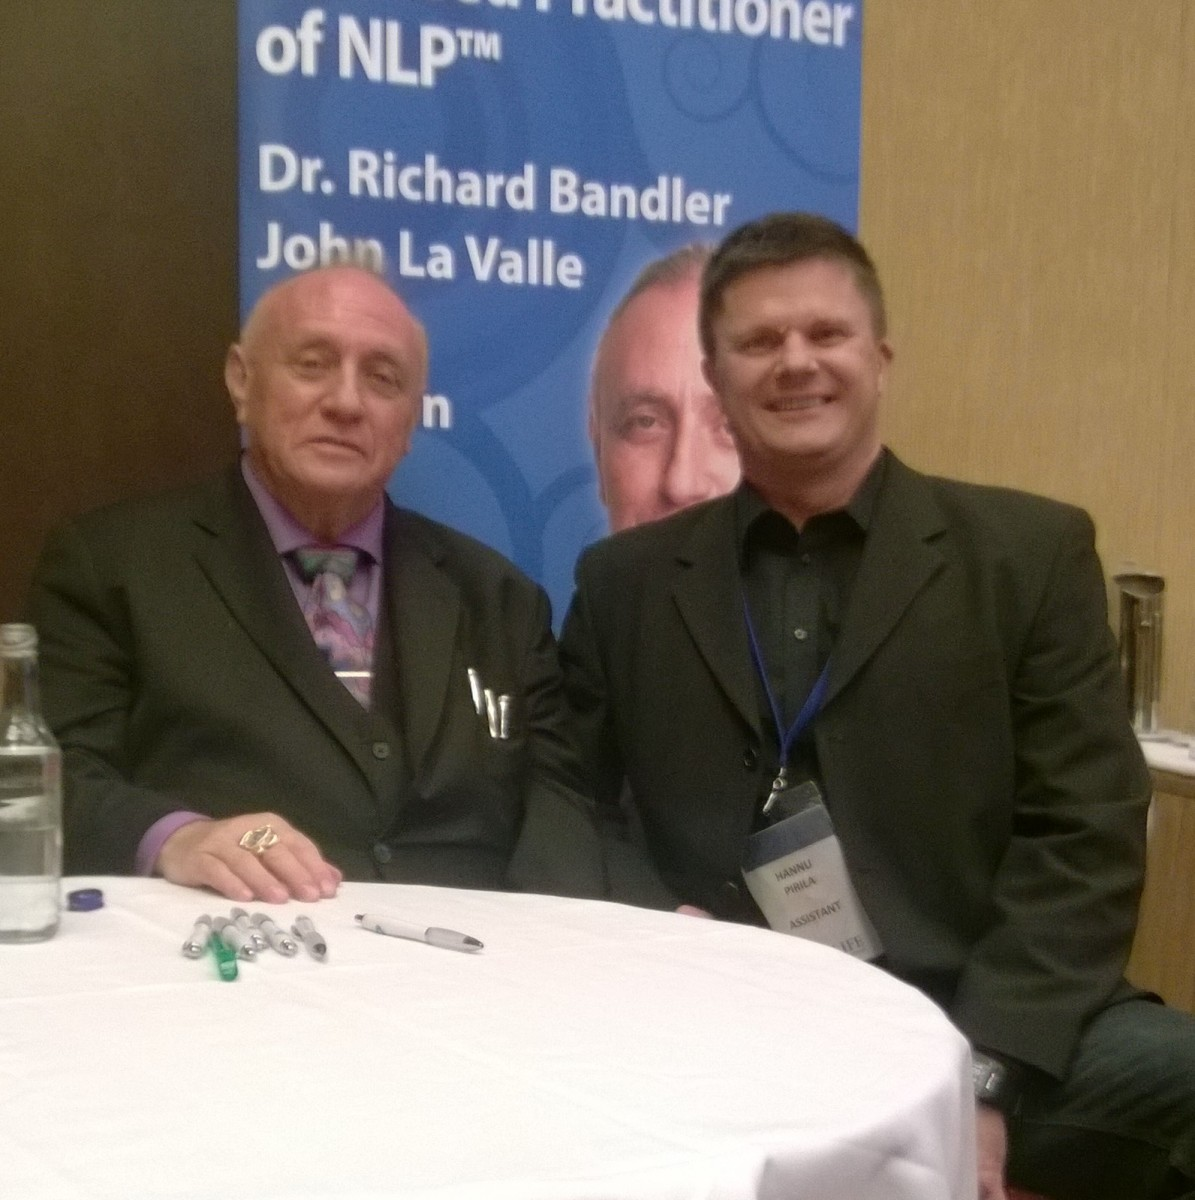 Richard Bandler and Hannu Pirilä in London 10-2016